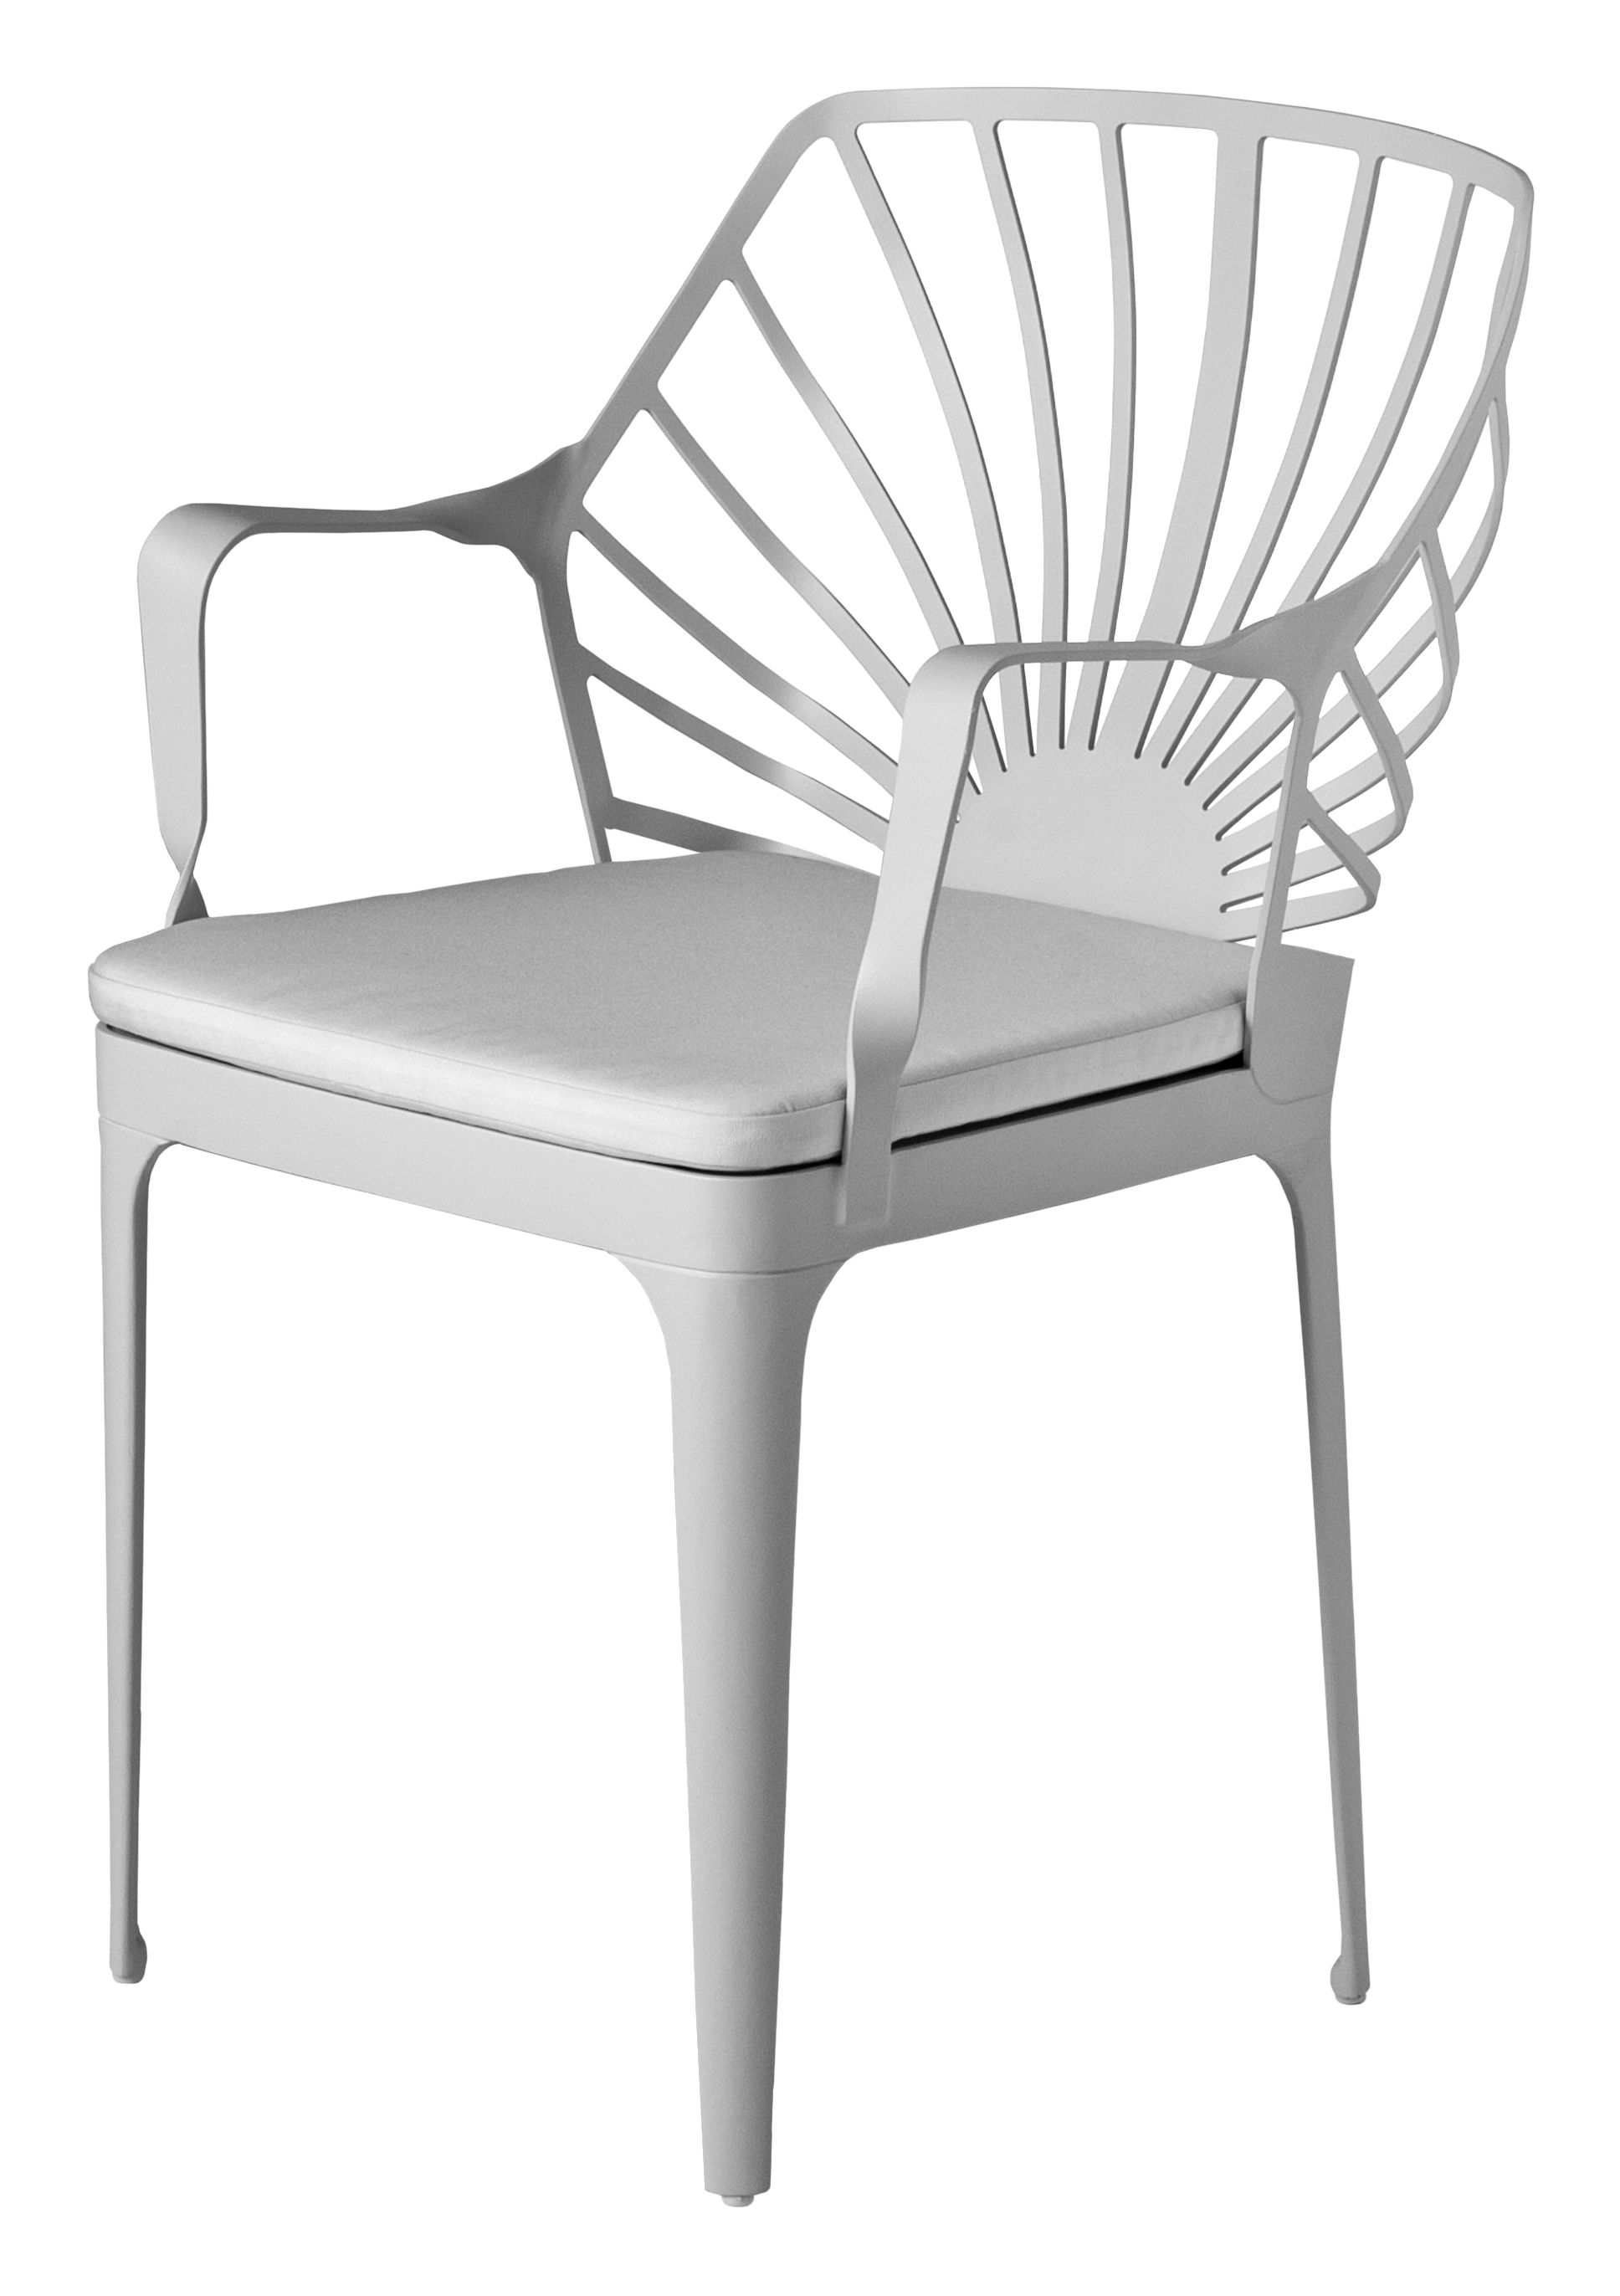 fauteuil sunrise avec coussin blanc avec coussin driade made in design. Black Bedroom Furniture Sets. Home Design Ideas